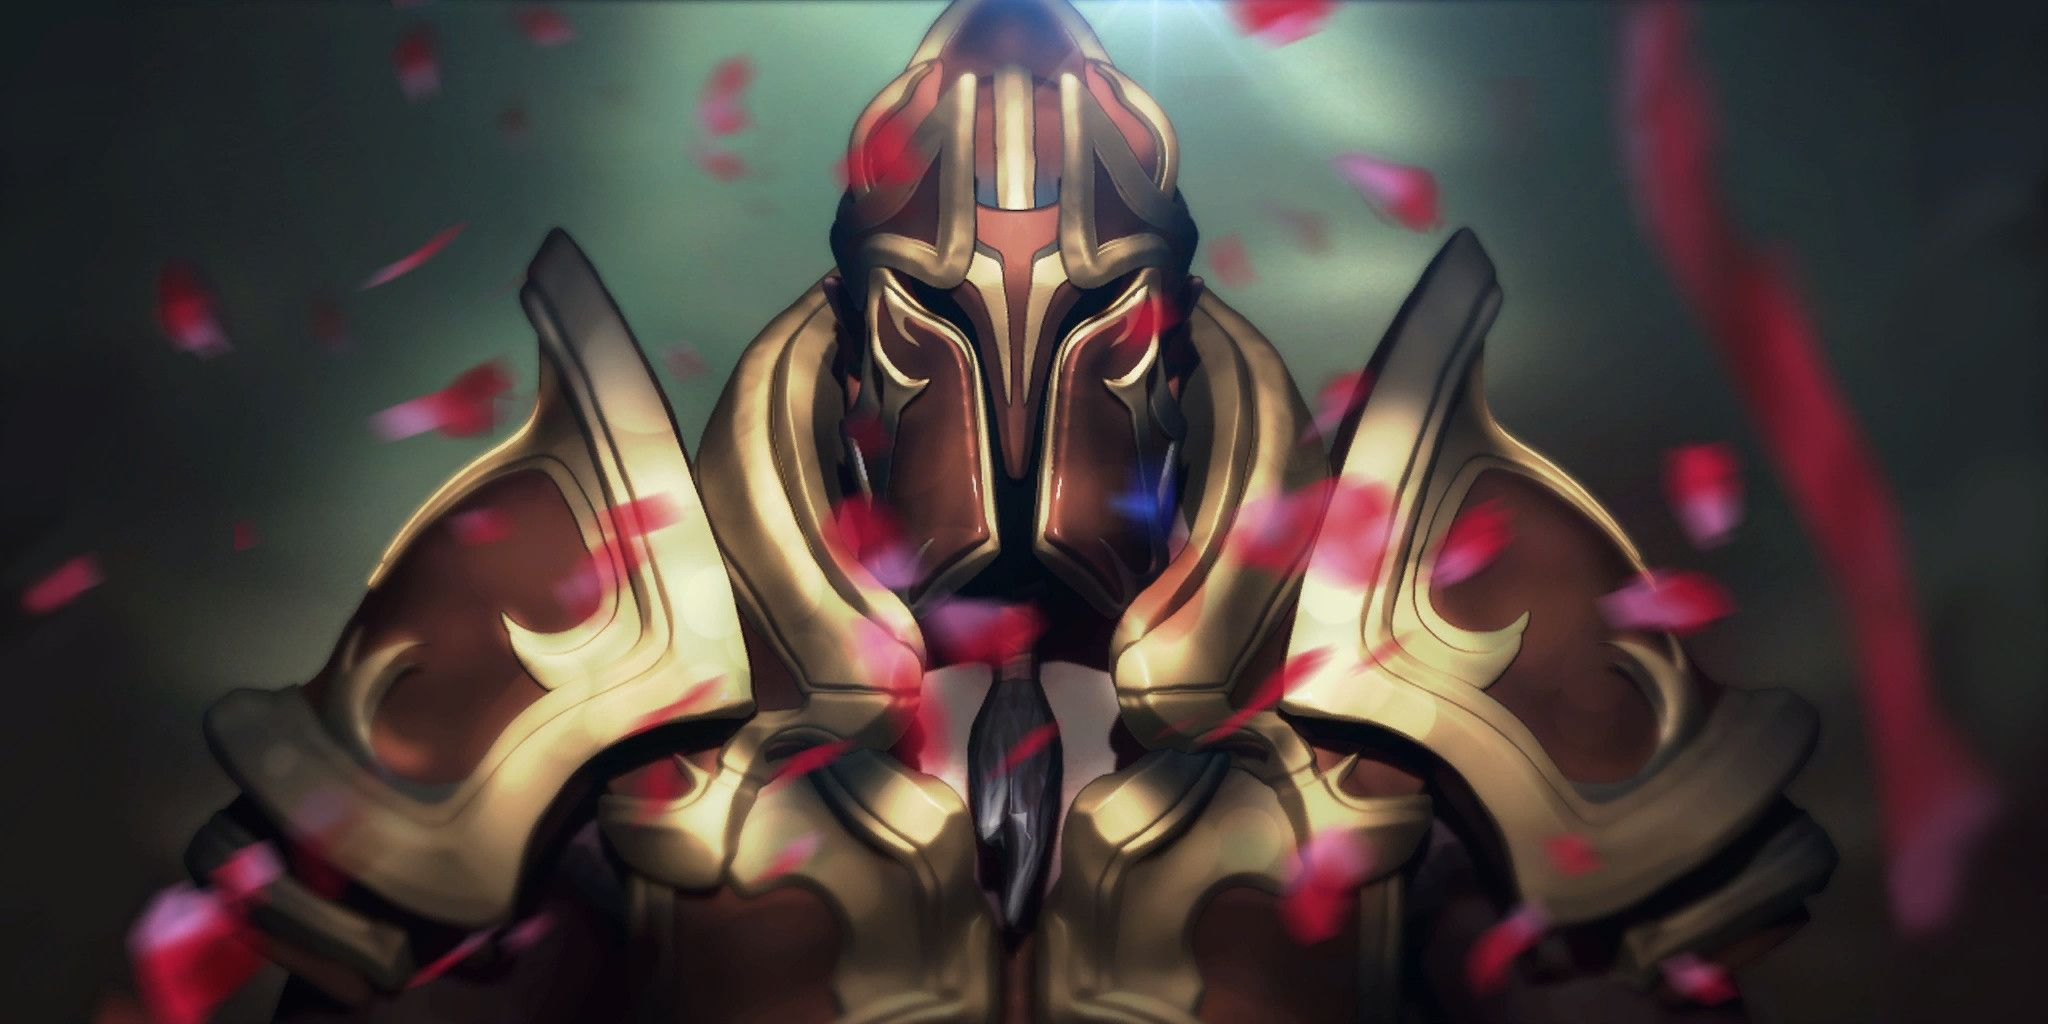 Dota 2 wallpapers dota 2 wallpaper loading mix 1920x1080 - Centaur Loading Screen Wallpaper More Find This Pin And More On Dota 2 Wallpapers